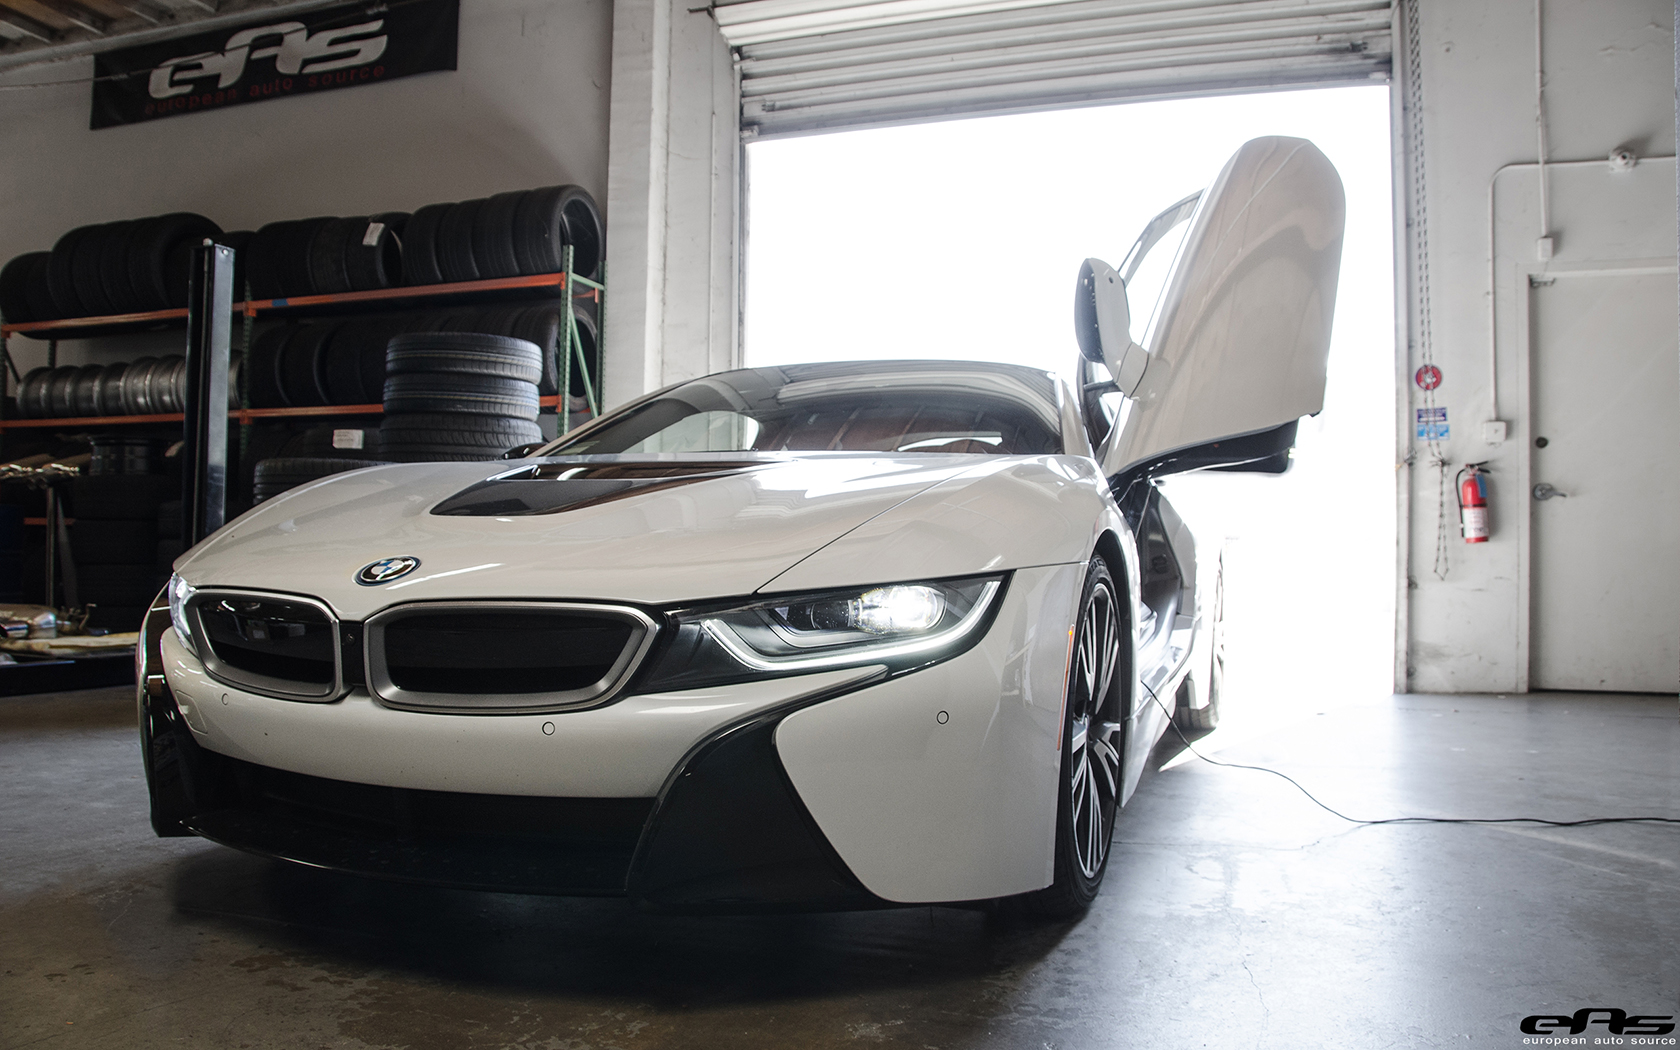 Crystal White Pearl Metallic With A Frozen Grey Accent BMW i8 Image 1